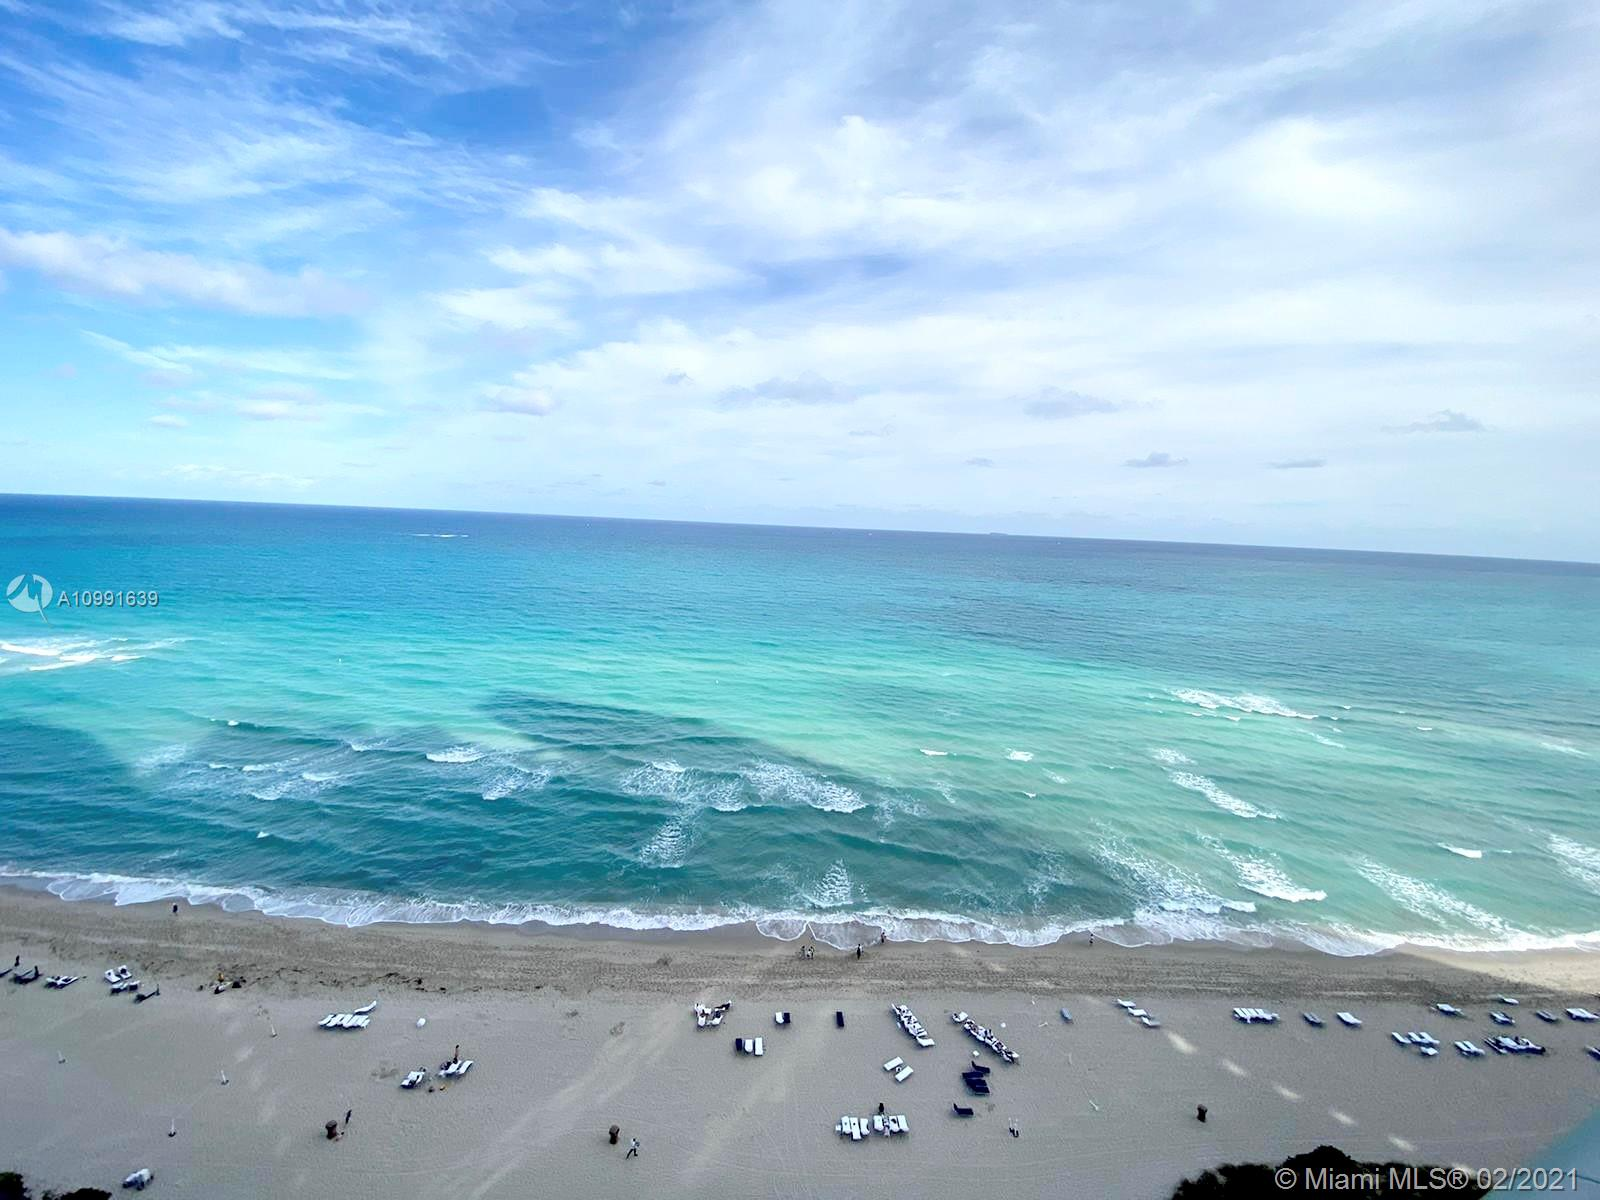 STUNNING DIRECT OCEAN VIEW UNIT, 1 BEDROOM 2 FULL BATHROOMS, TOP OF THE LINE APPLIANCES, LOCATED AT JADE OCEAN IN SUNNY ISLES, ENJOY THIS AMAZING VIEW, BUILDING OFFER 5 STAR AMENITIES, TWO SWIMMING POOLS, RESTAURANT, LUXURY LOBBY, AND MORE.